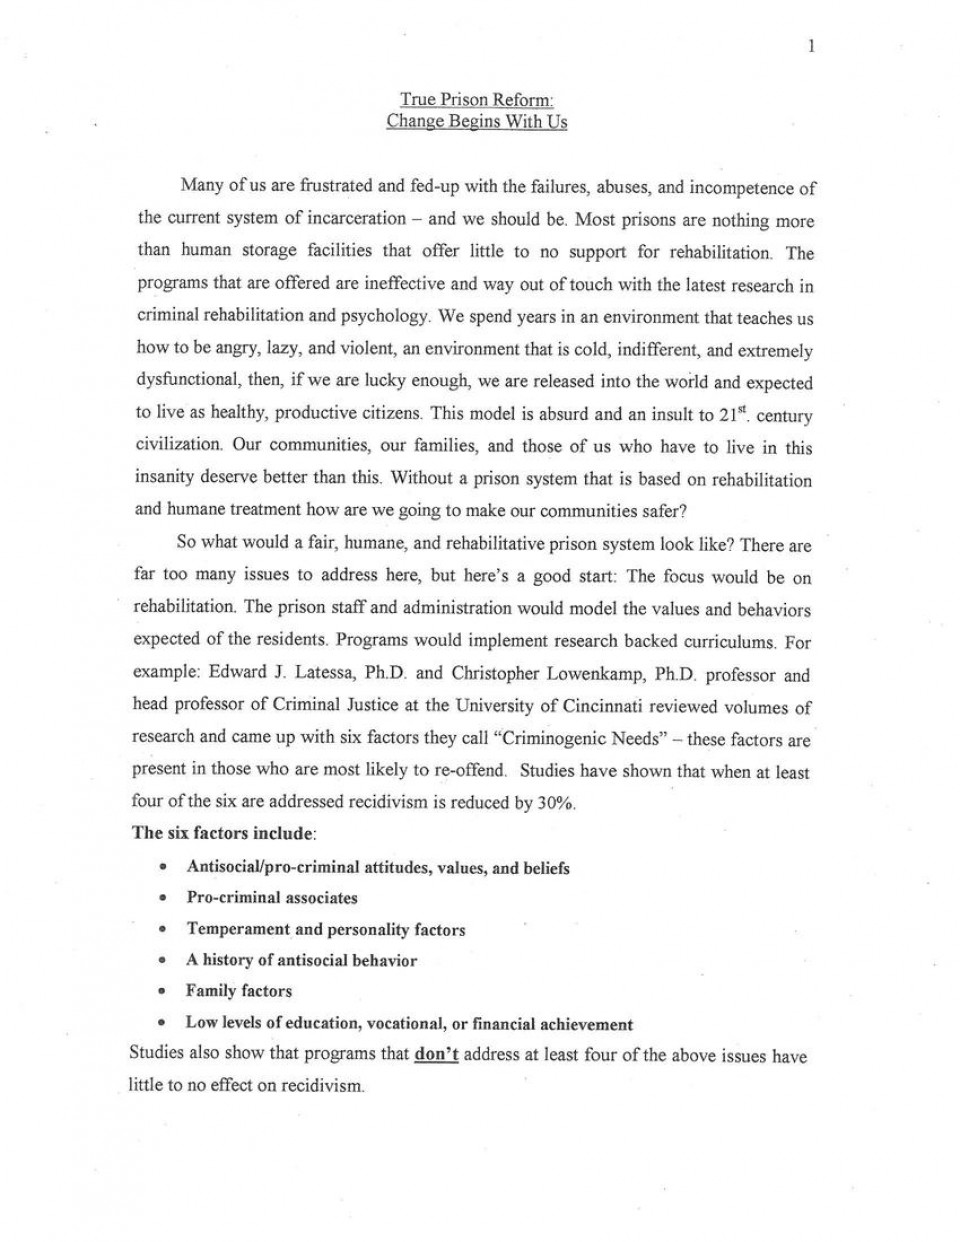 004 Profile Essay Topics Doc6217 Page Outstanding Personal Good 960